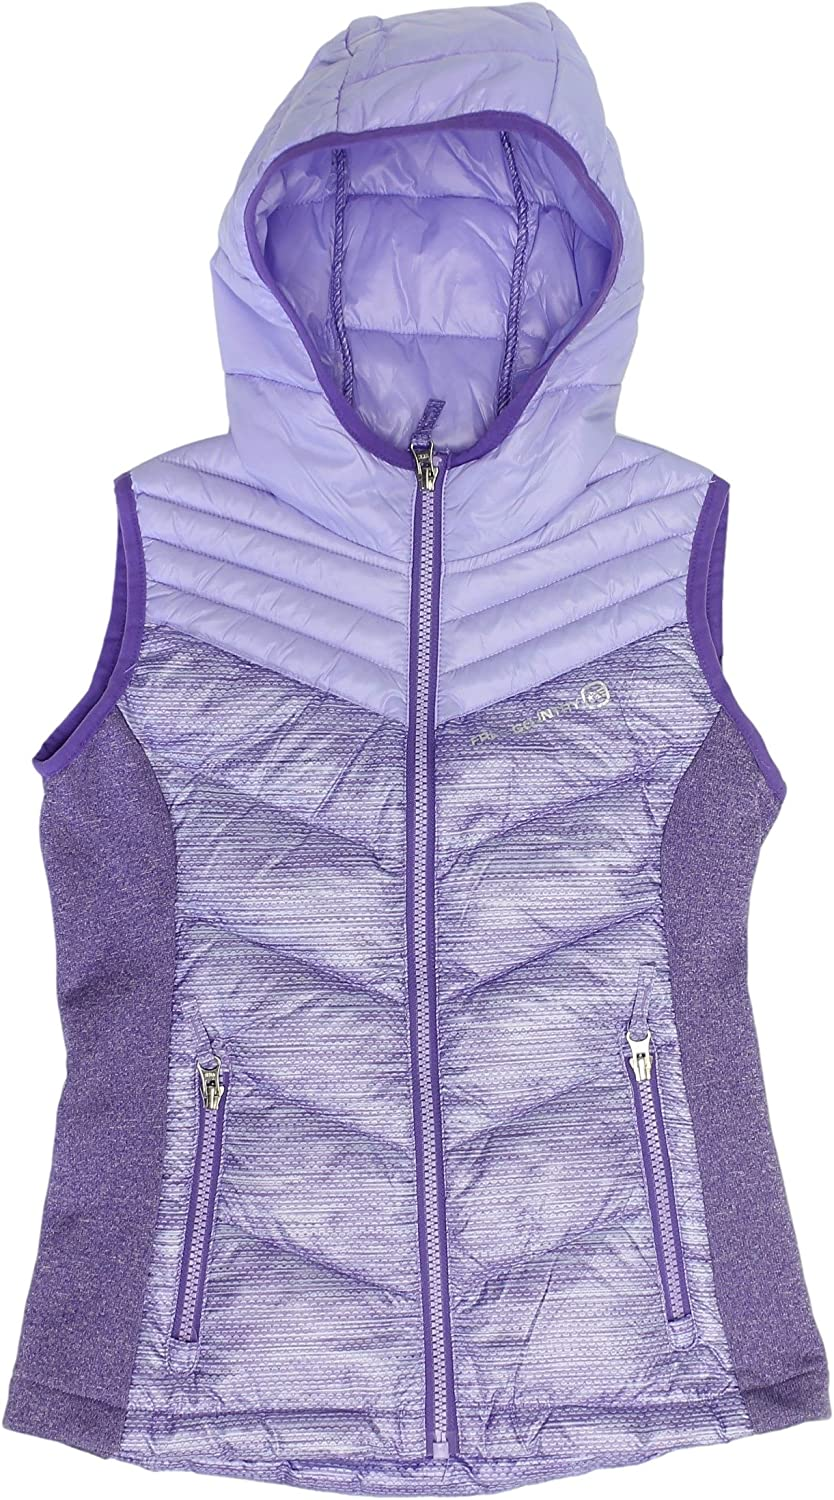 Free Country Ultra Lightweight Down Quilted Vest for Girls 912oLNuPoIL